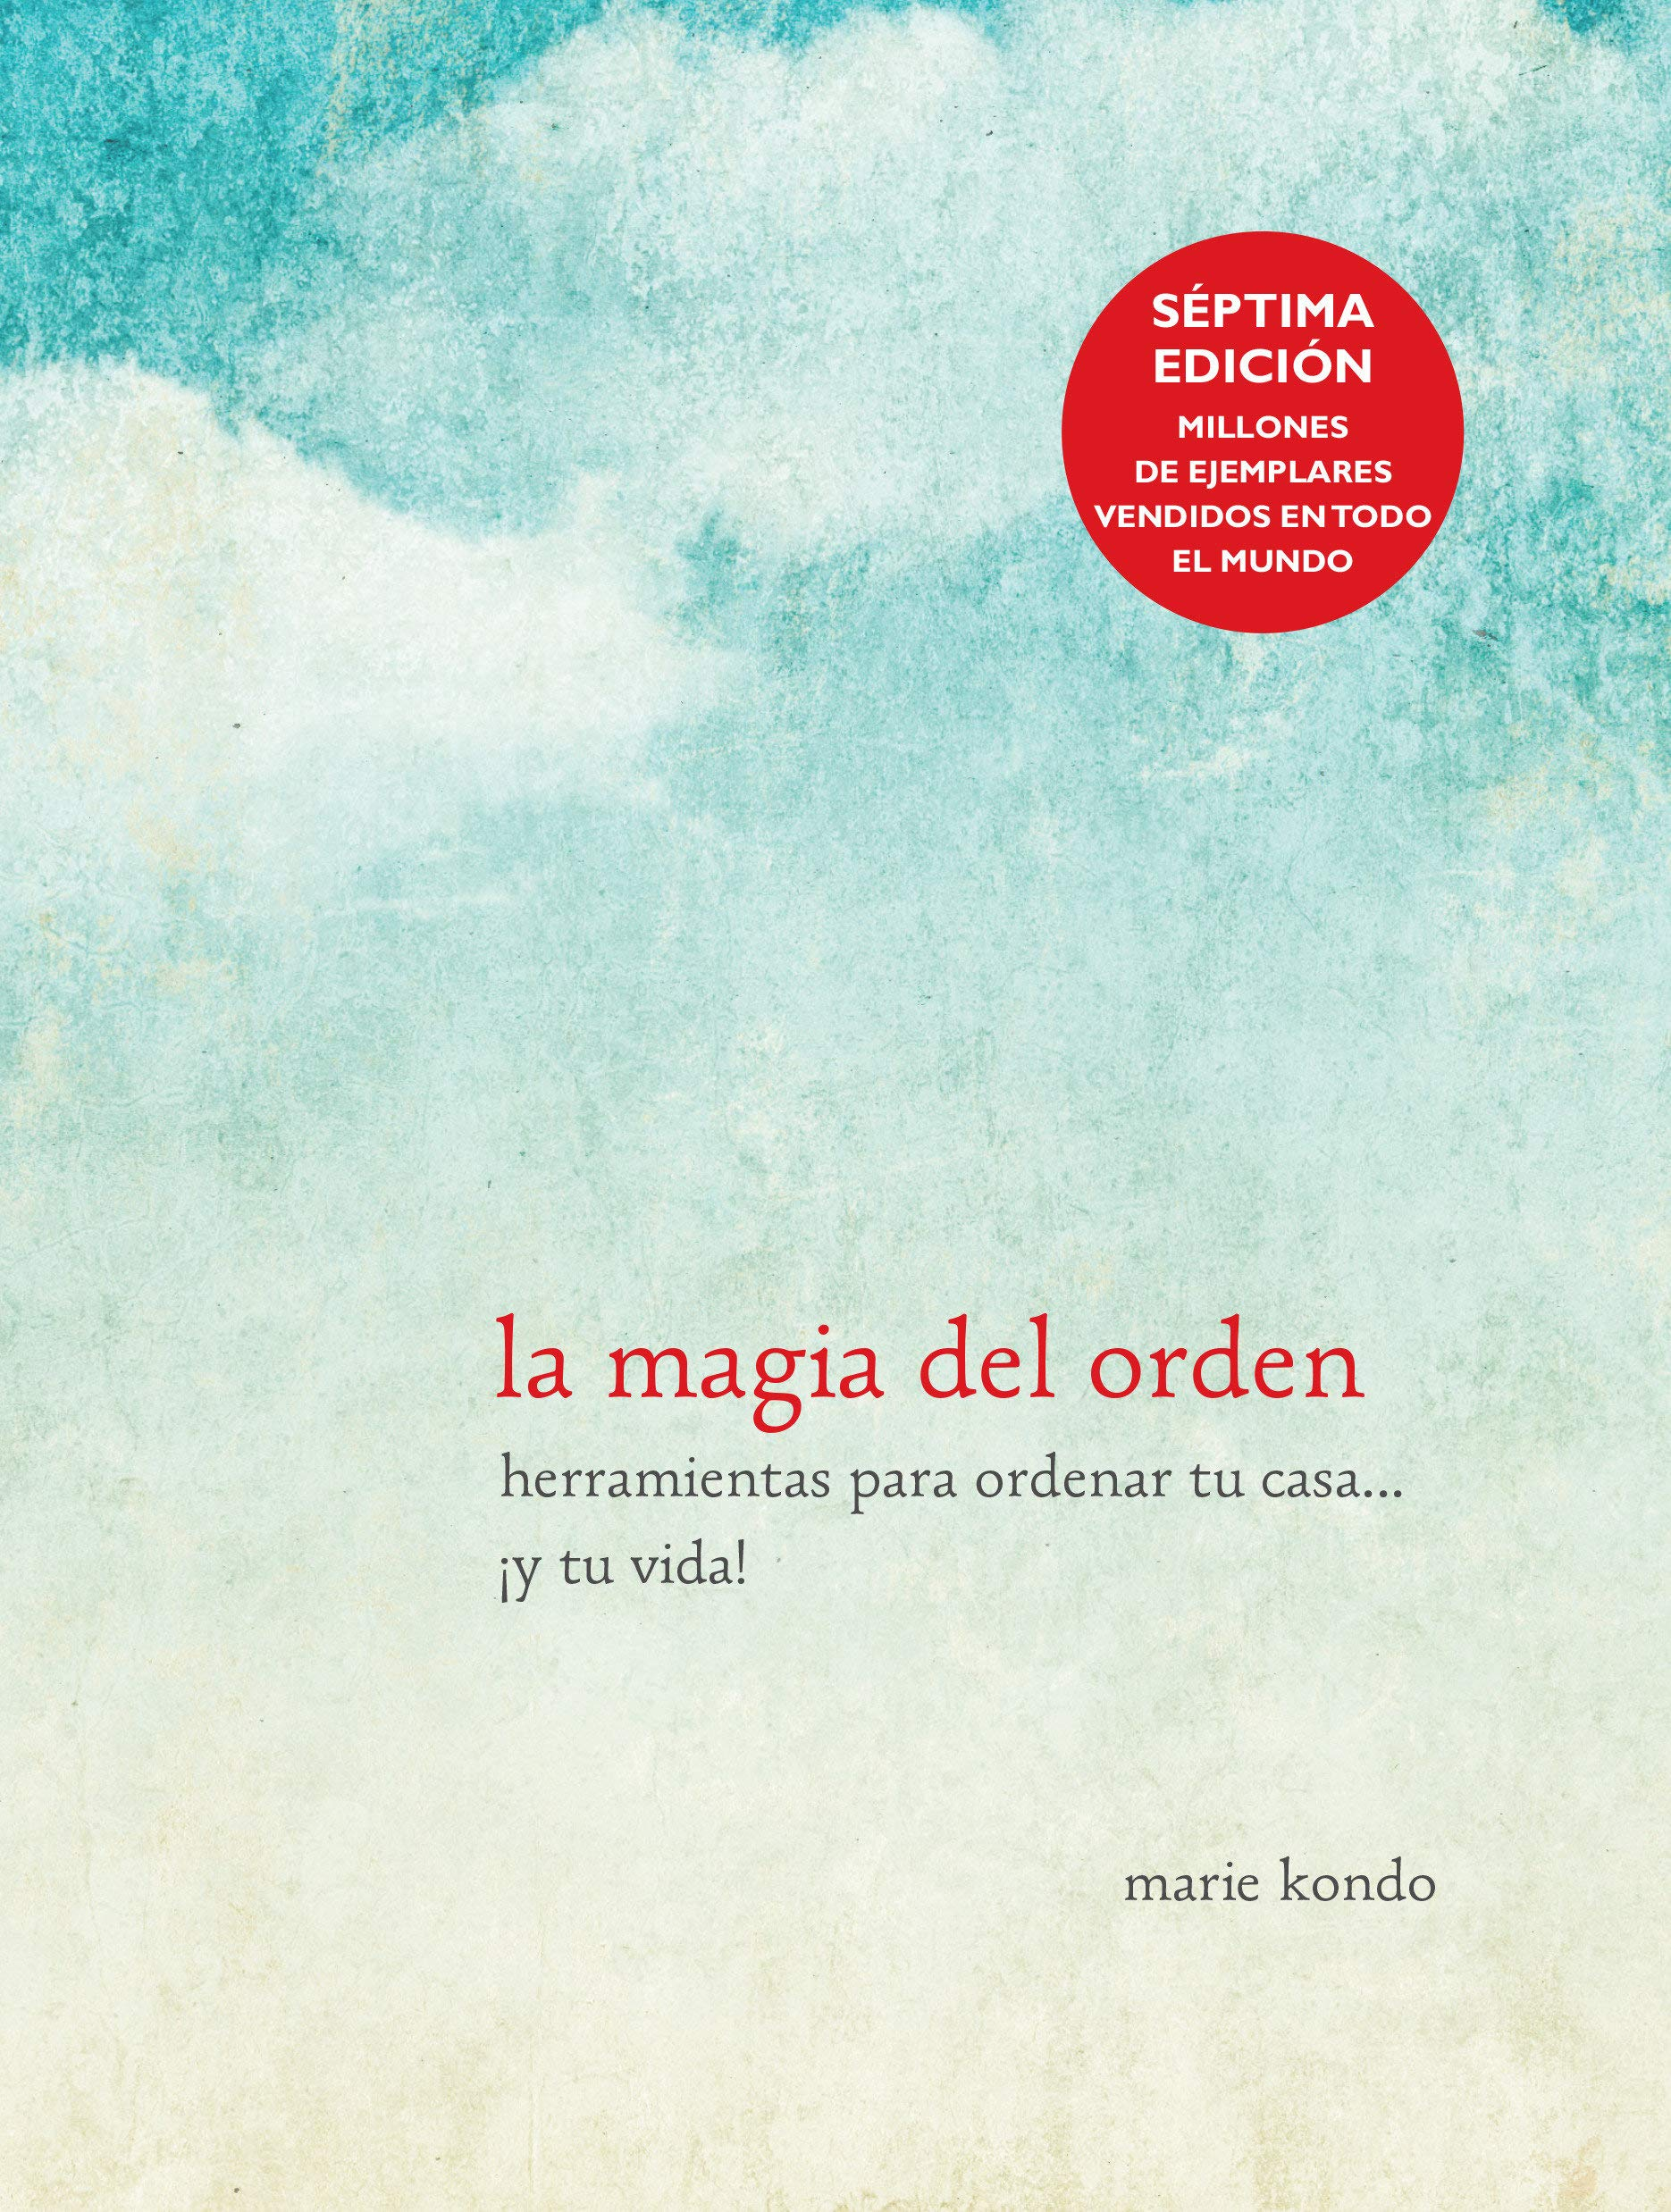 Amazon.com: La magia del orden / The Life-Changing Magic of Tidying Up  (Spanish Edition) (9781941999196): Marie Kondo: Books